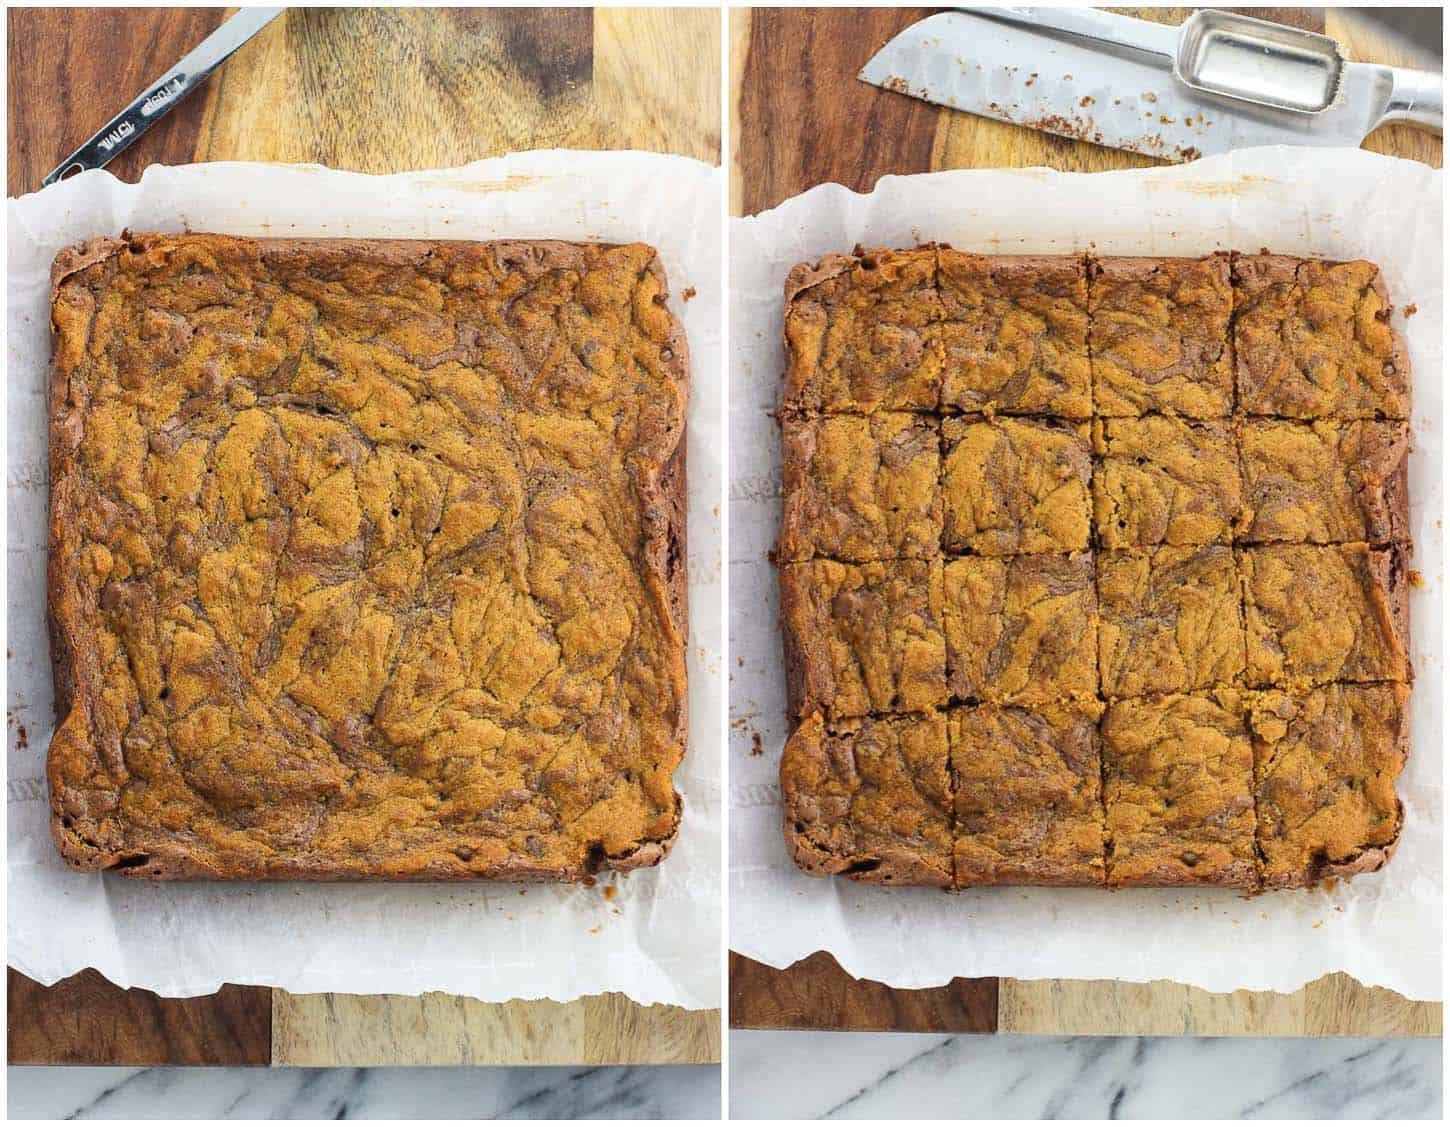 Fudgy chocolate chip pumpkin swirl brownies combine the best of both worlds in one dessert. Fudgy brownie batter is swirled with a perfectly spiced pumpkin mixture in this dessert bar recipe perfect for fall.